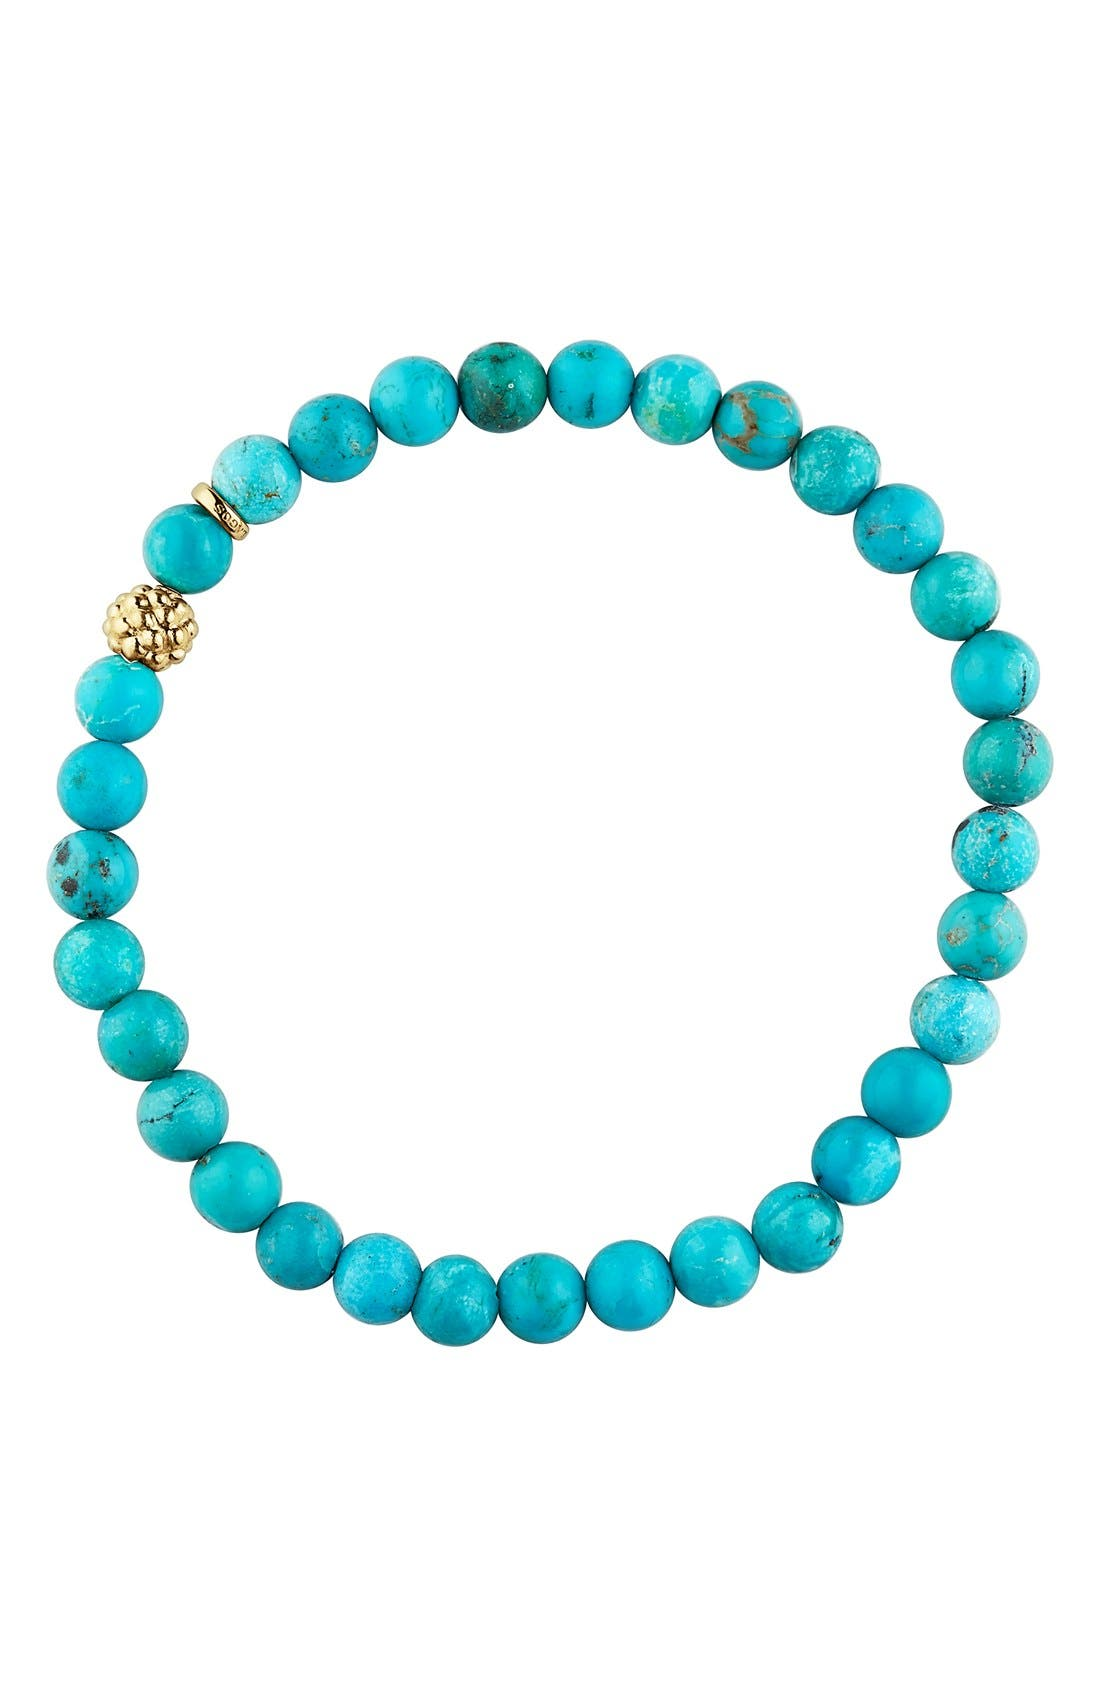 'Caviar Icon' Semiprecious Stone Bracelet,                             Alternate thumbnail 3, color,                             TURQUOISE/ GOLD